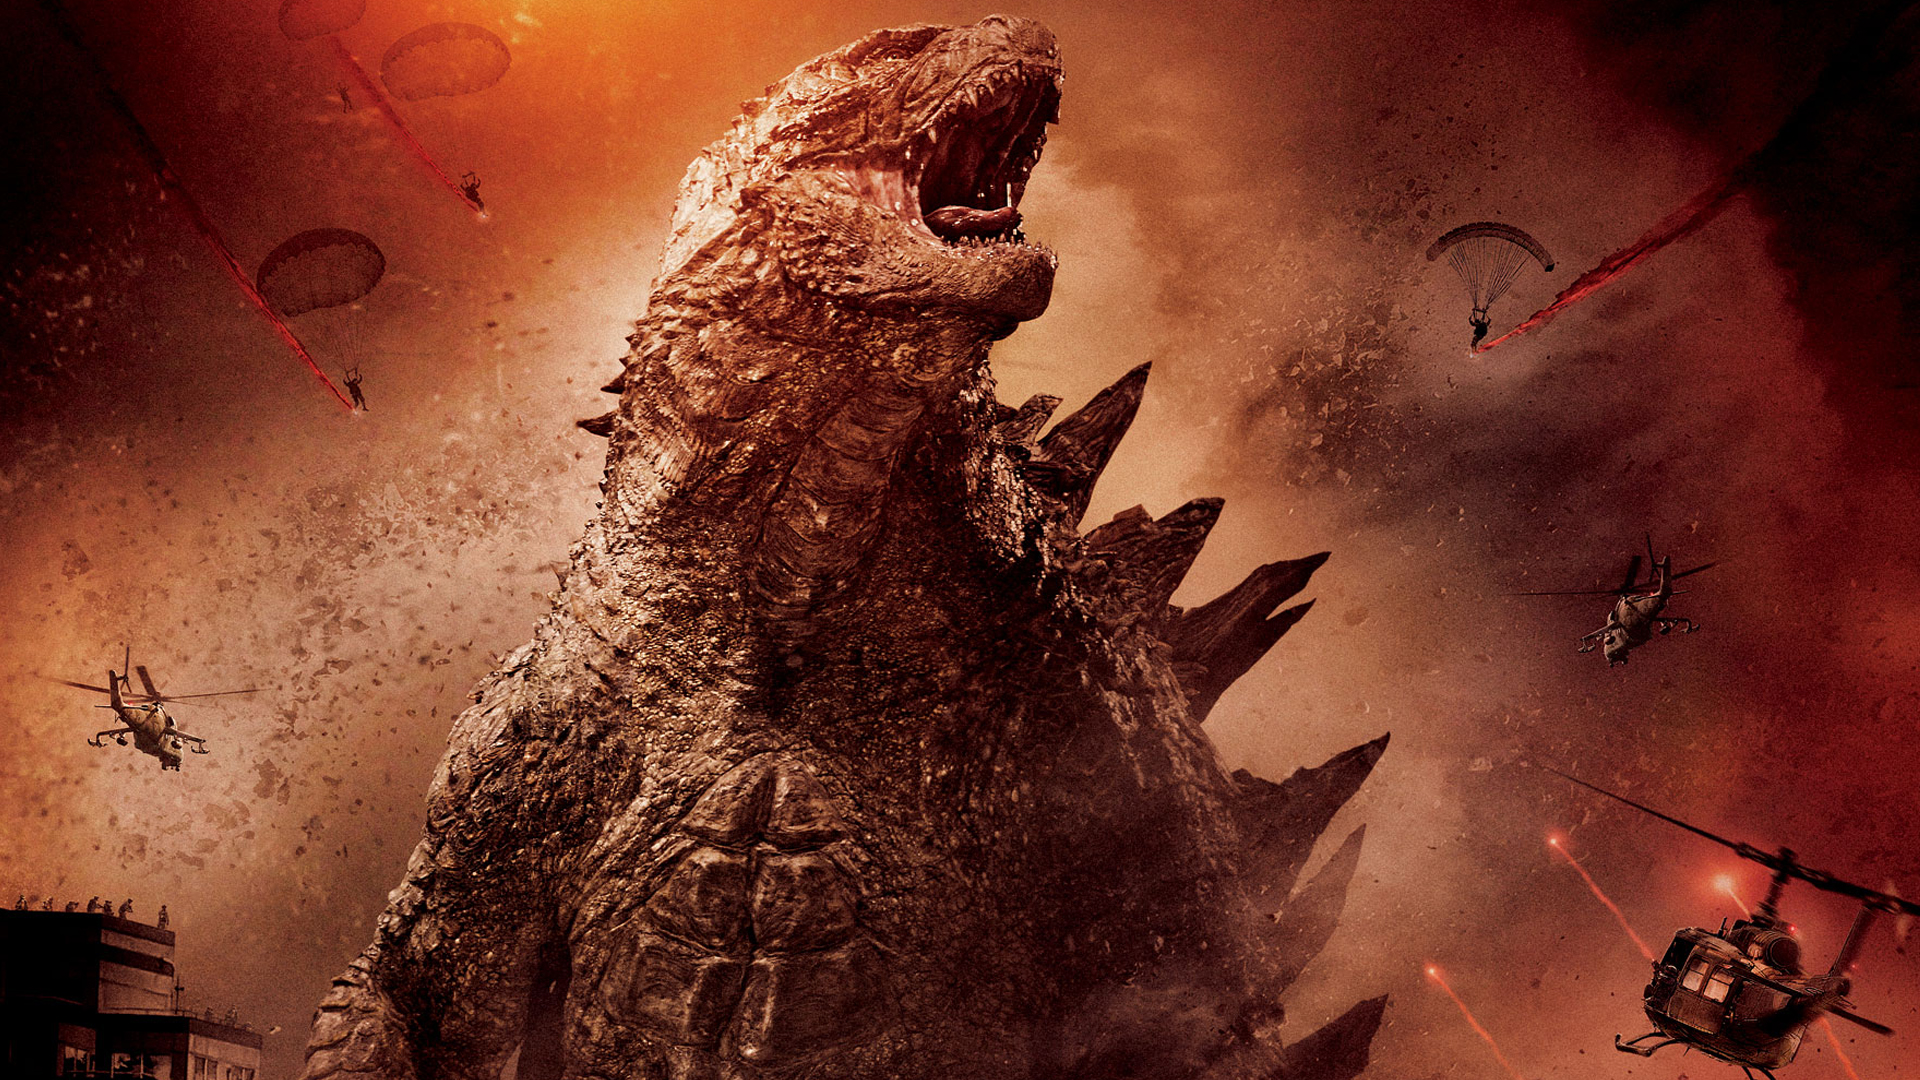 Godzilla 2014 Wallpaper 1920x1080 by sachso74 1920x1080